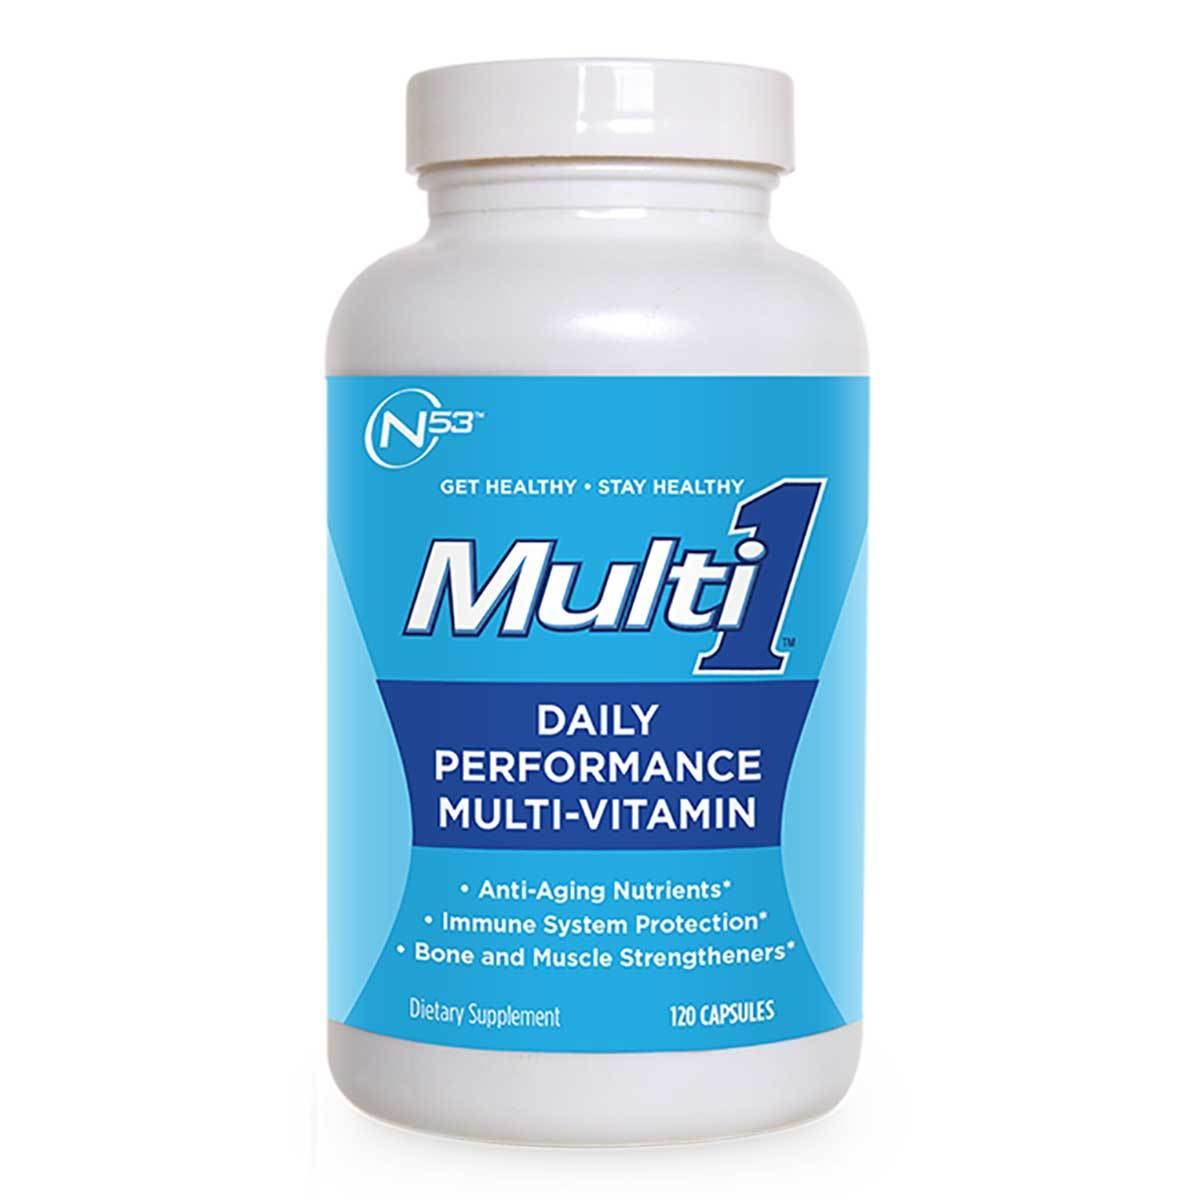 Nutrition 53 Multi 1 120 Caps Vitamins Nutrition 53  (1058967224363)